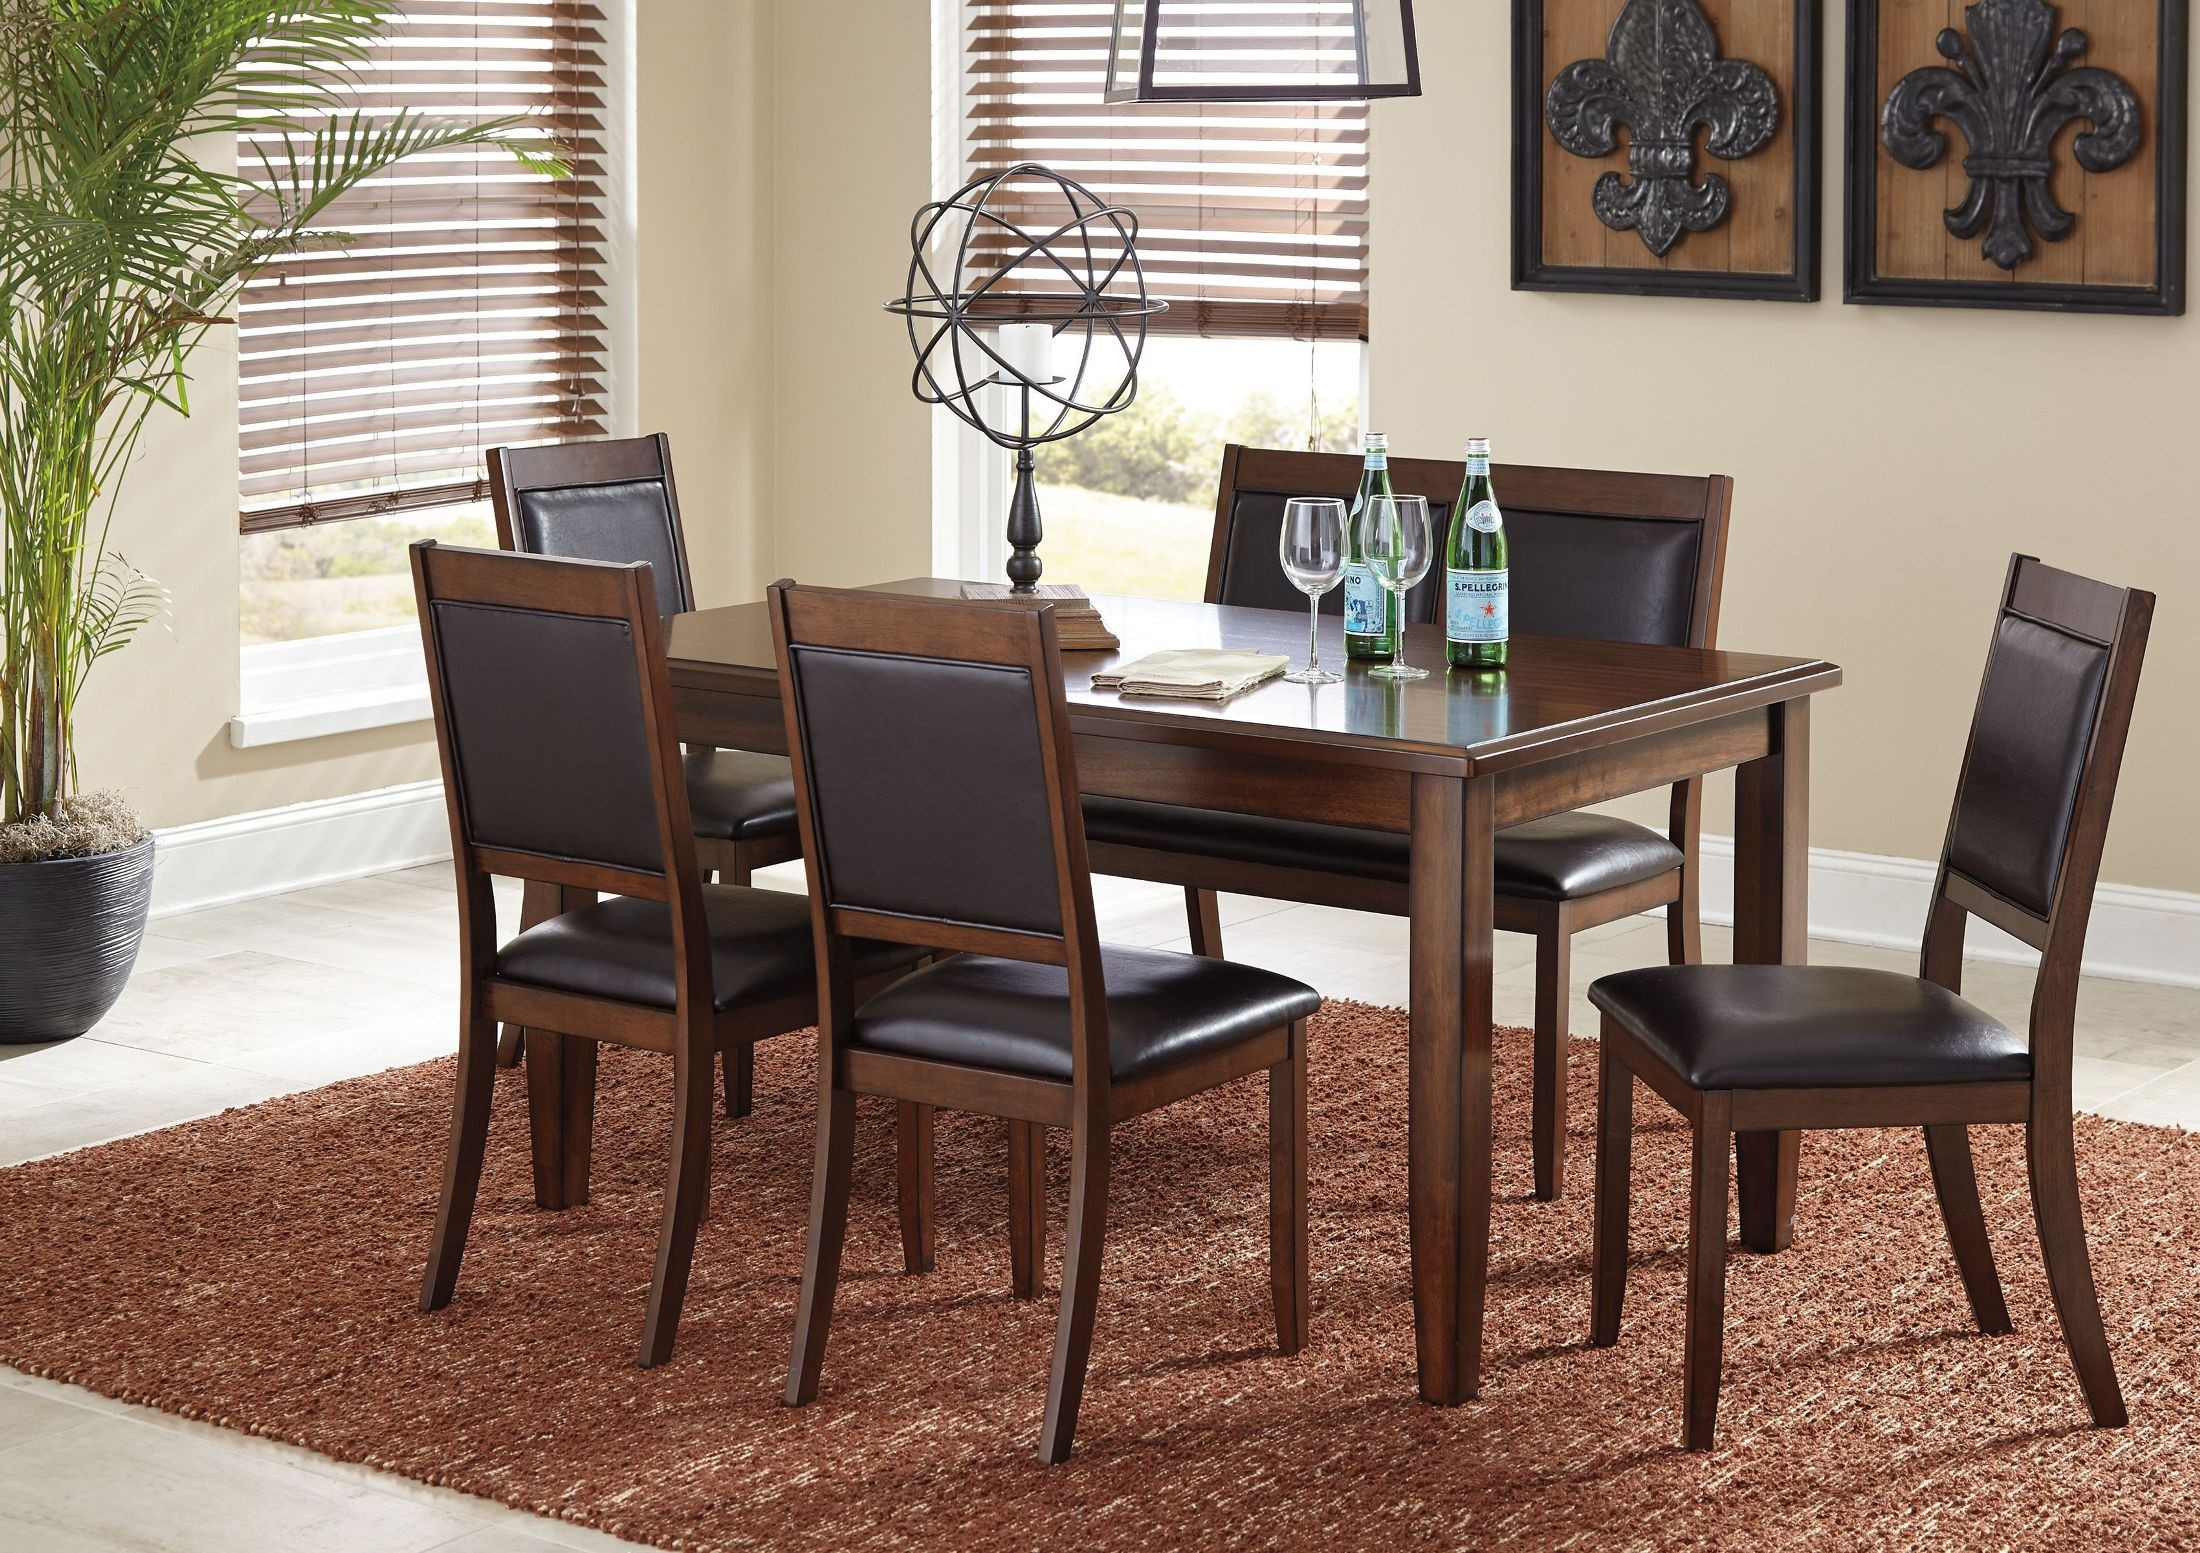 Meredy brown 6 piece dining room set from ashley coleman for 2 piece dining room set